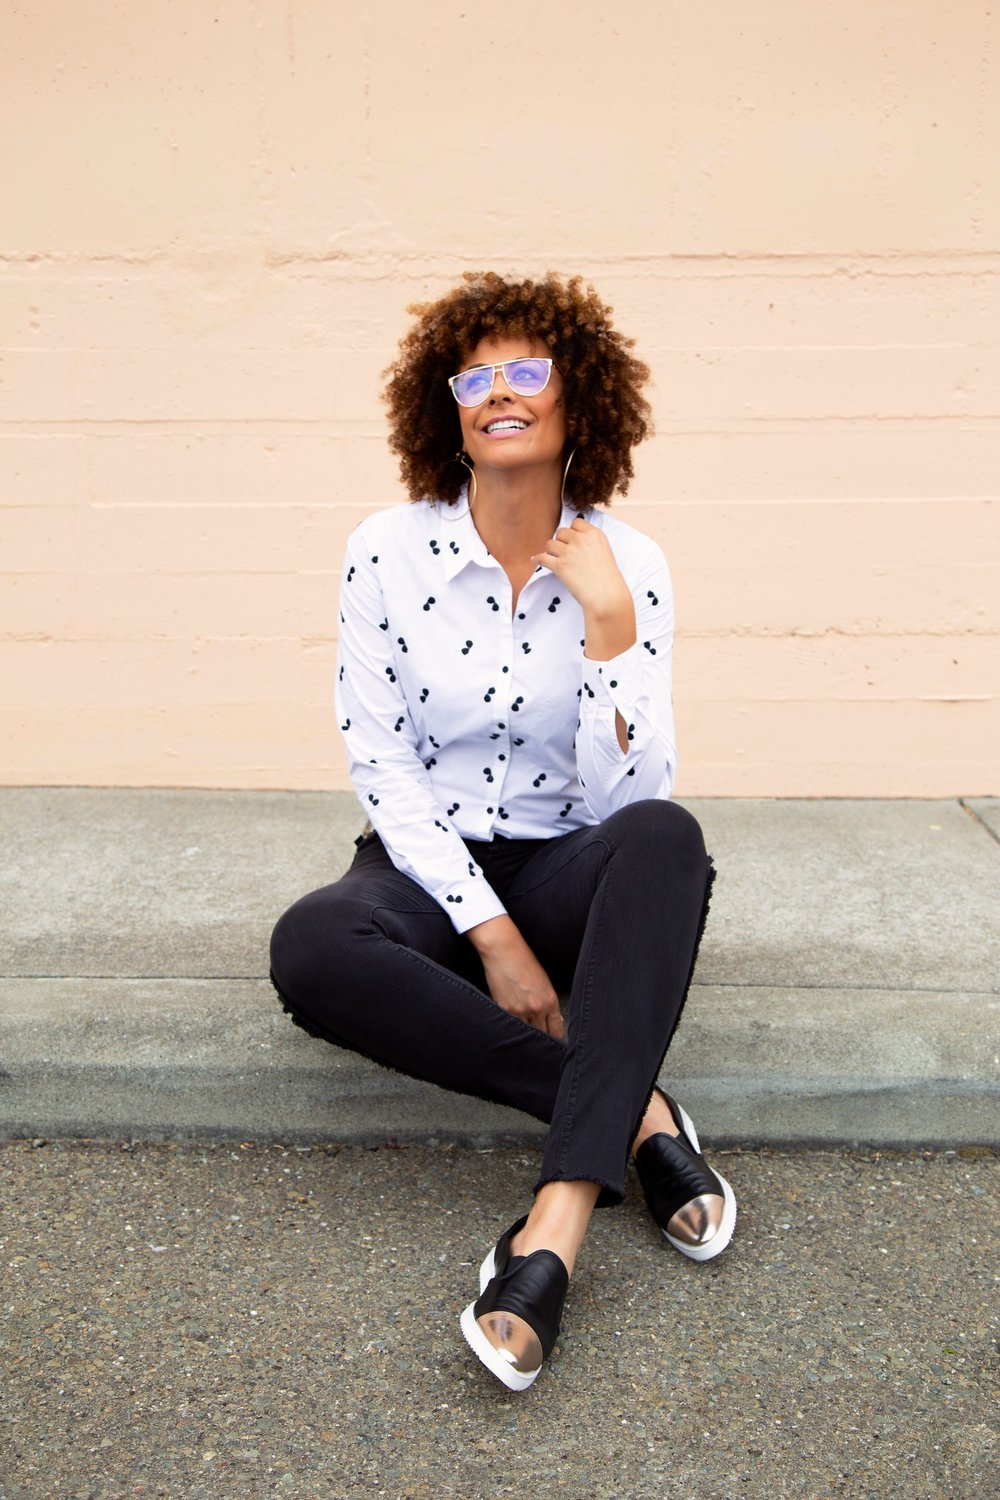 Shirt ,  Jeans  and  shoes  -  Karl Lagerfeld Paris for Long Tall Sally  | Glasses - @opaqueeyewear | Hair - Braidout using  Beija Flor Naturals   Maracula Milk  and  Creme Brulee  (a little of both...it goes a long ways)  Photo Credit -  Lakeela Smith